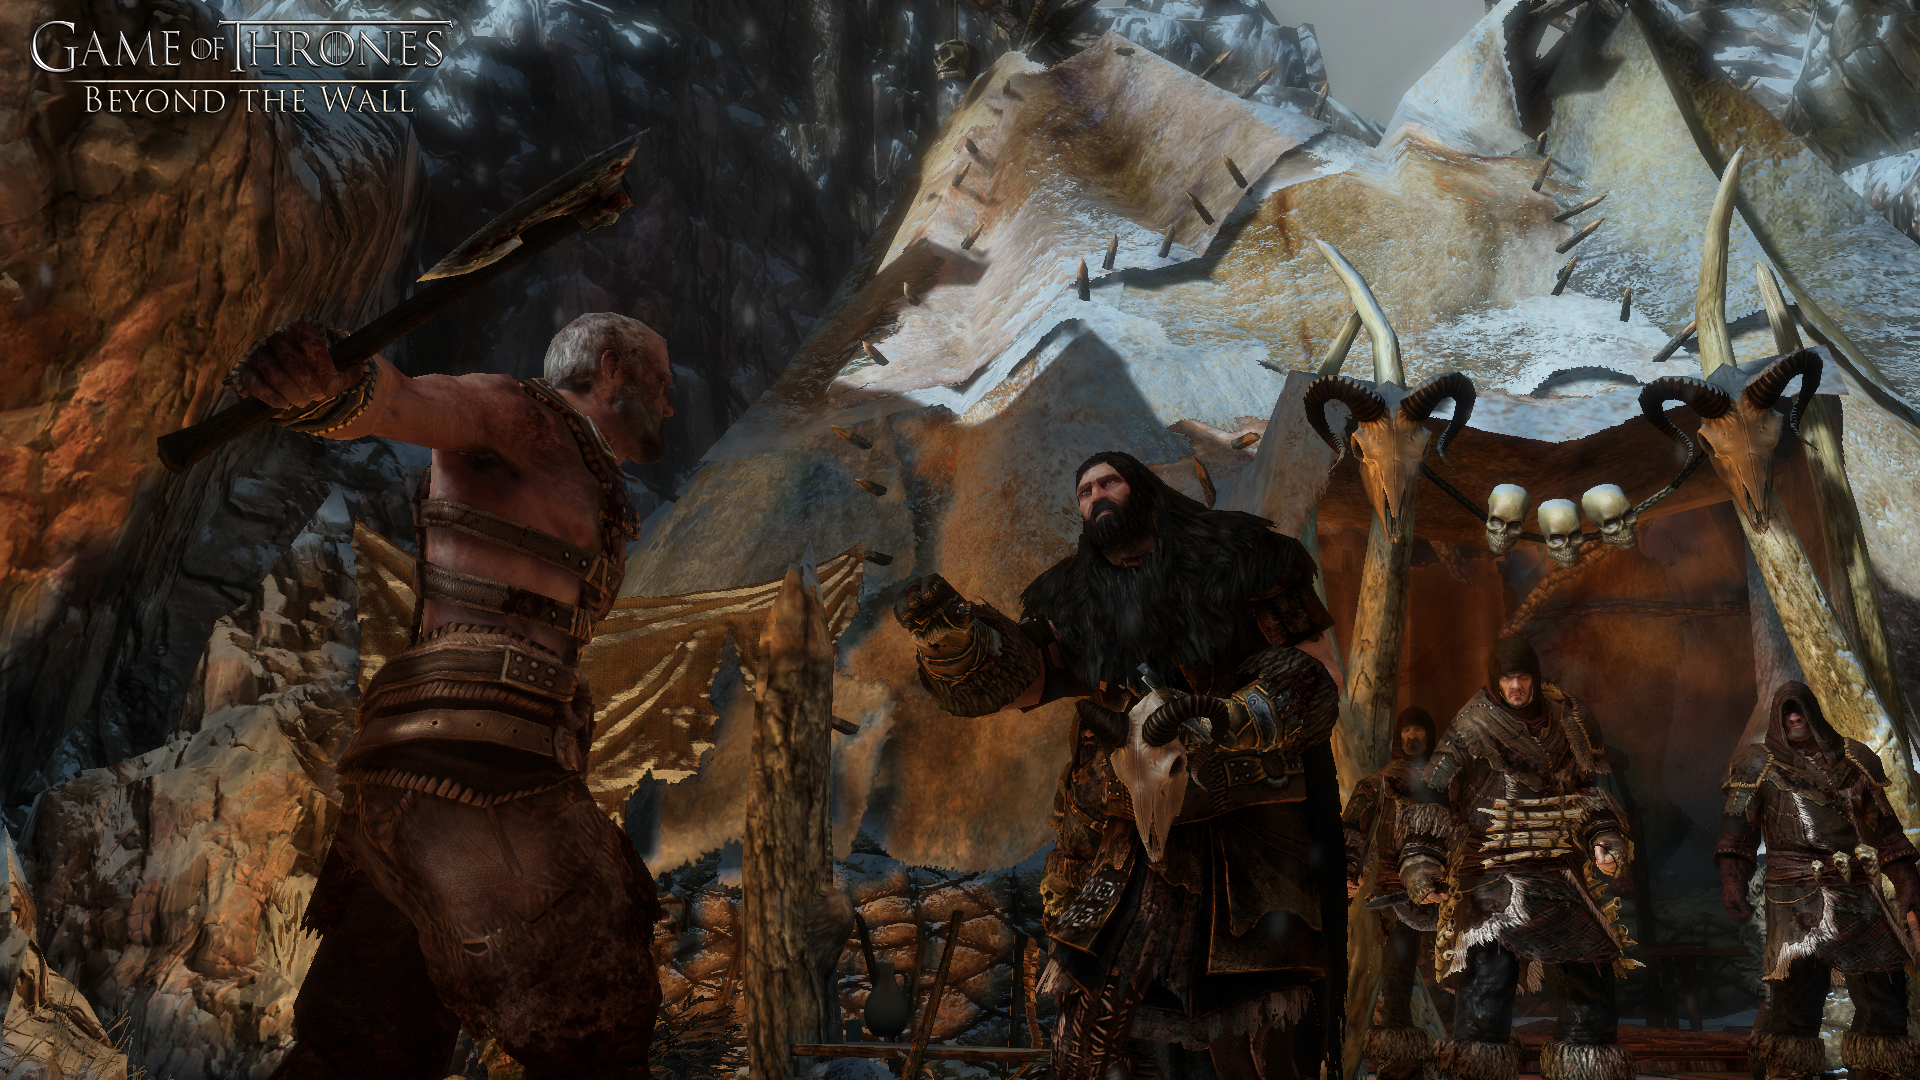 Game Of Thrones DLC Travels Beyond The Wall #24533